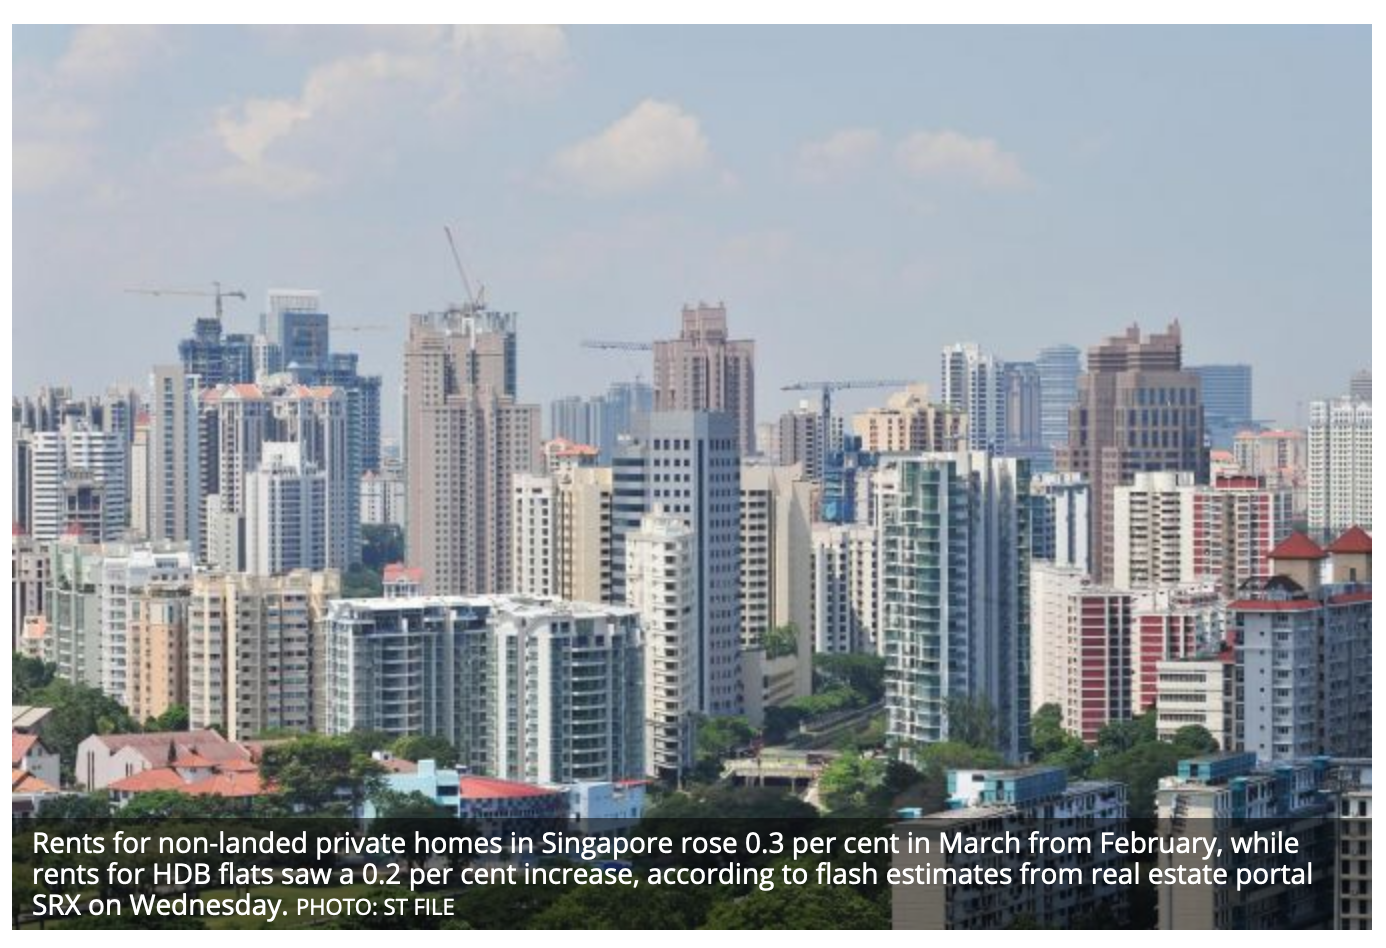 Singapore-condo-and-HDB-rents-rise-in-March-a